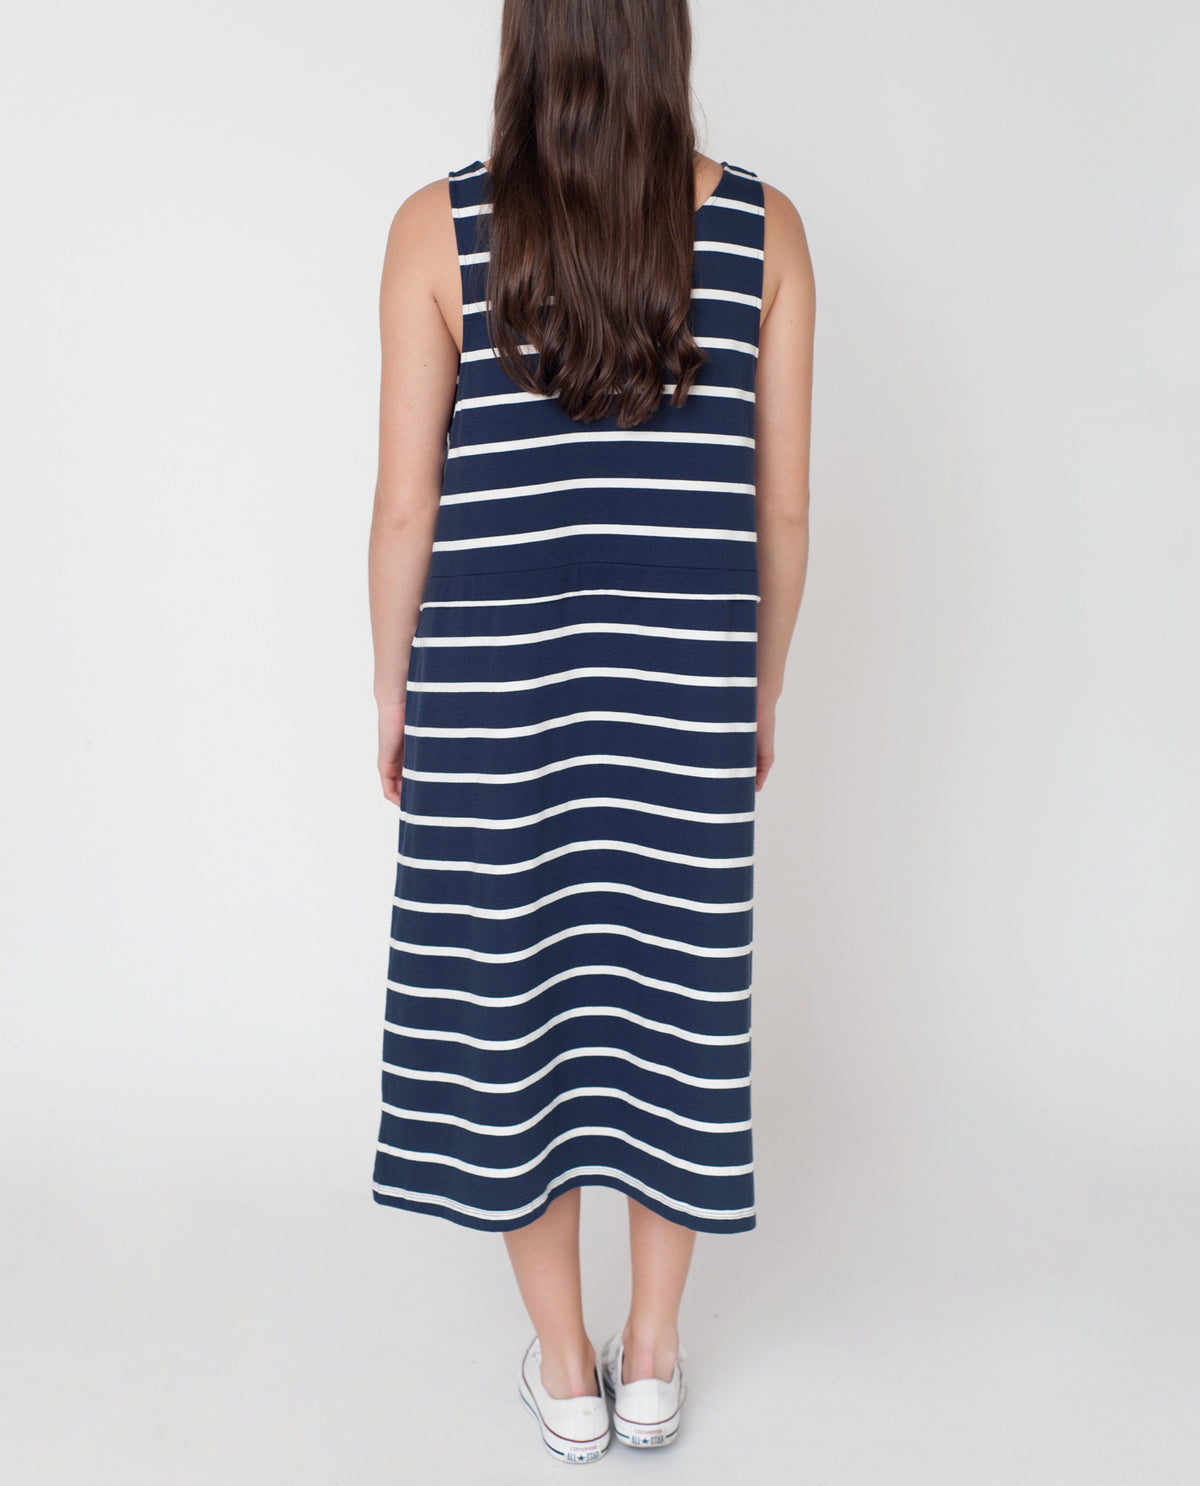 MACIE Organic Cotton Dress